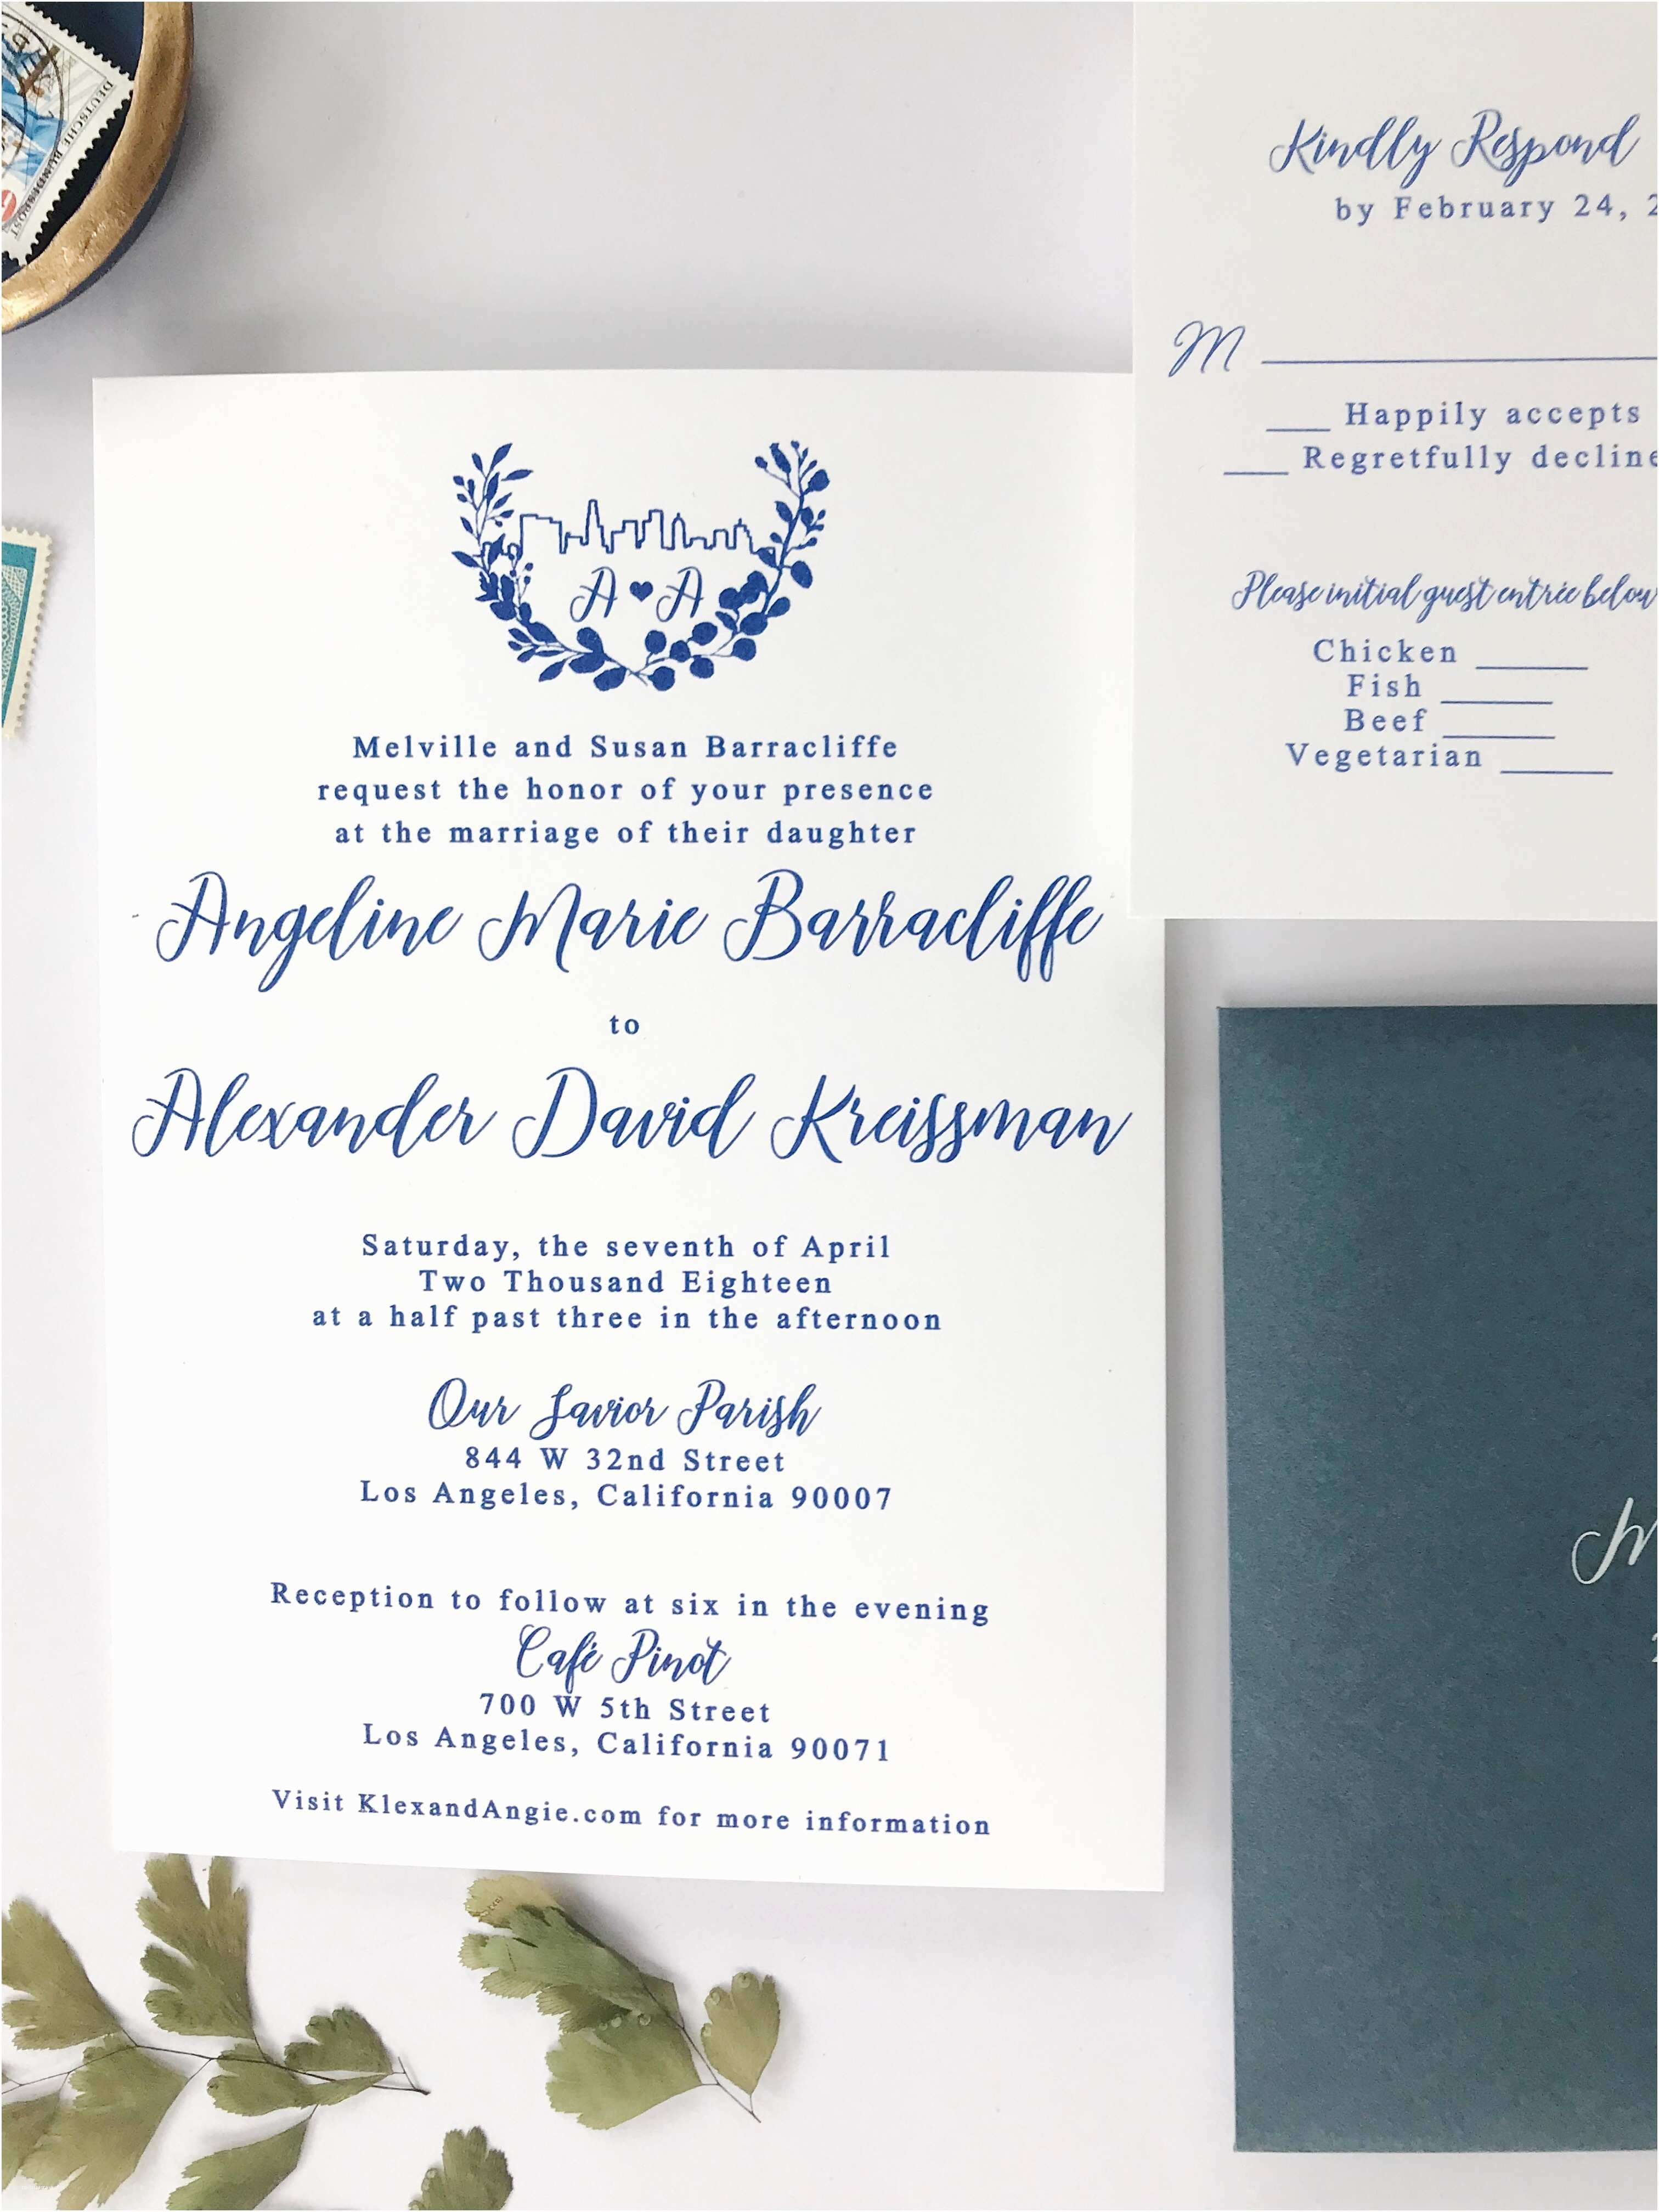 Thermography Wedding Invitations thermography Wedding Invitations by Unica forma Unicaforma